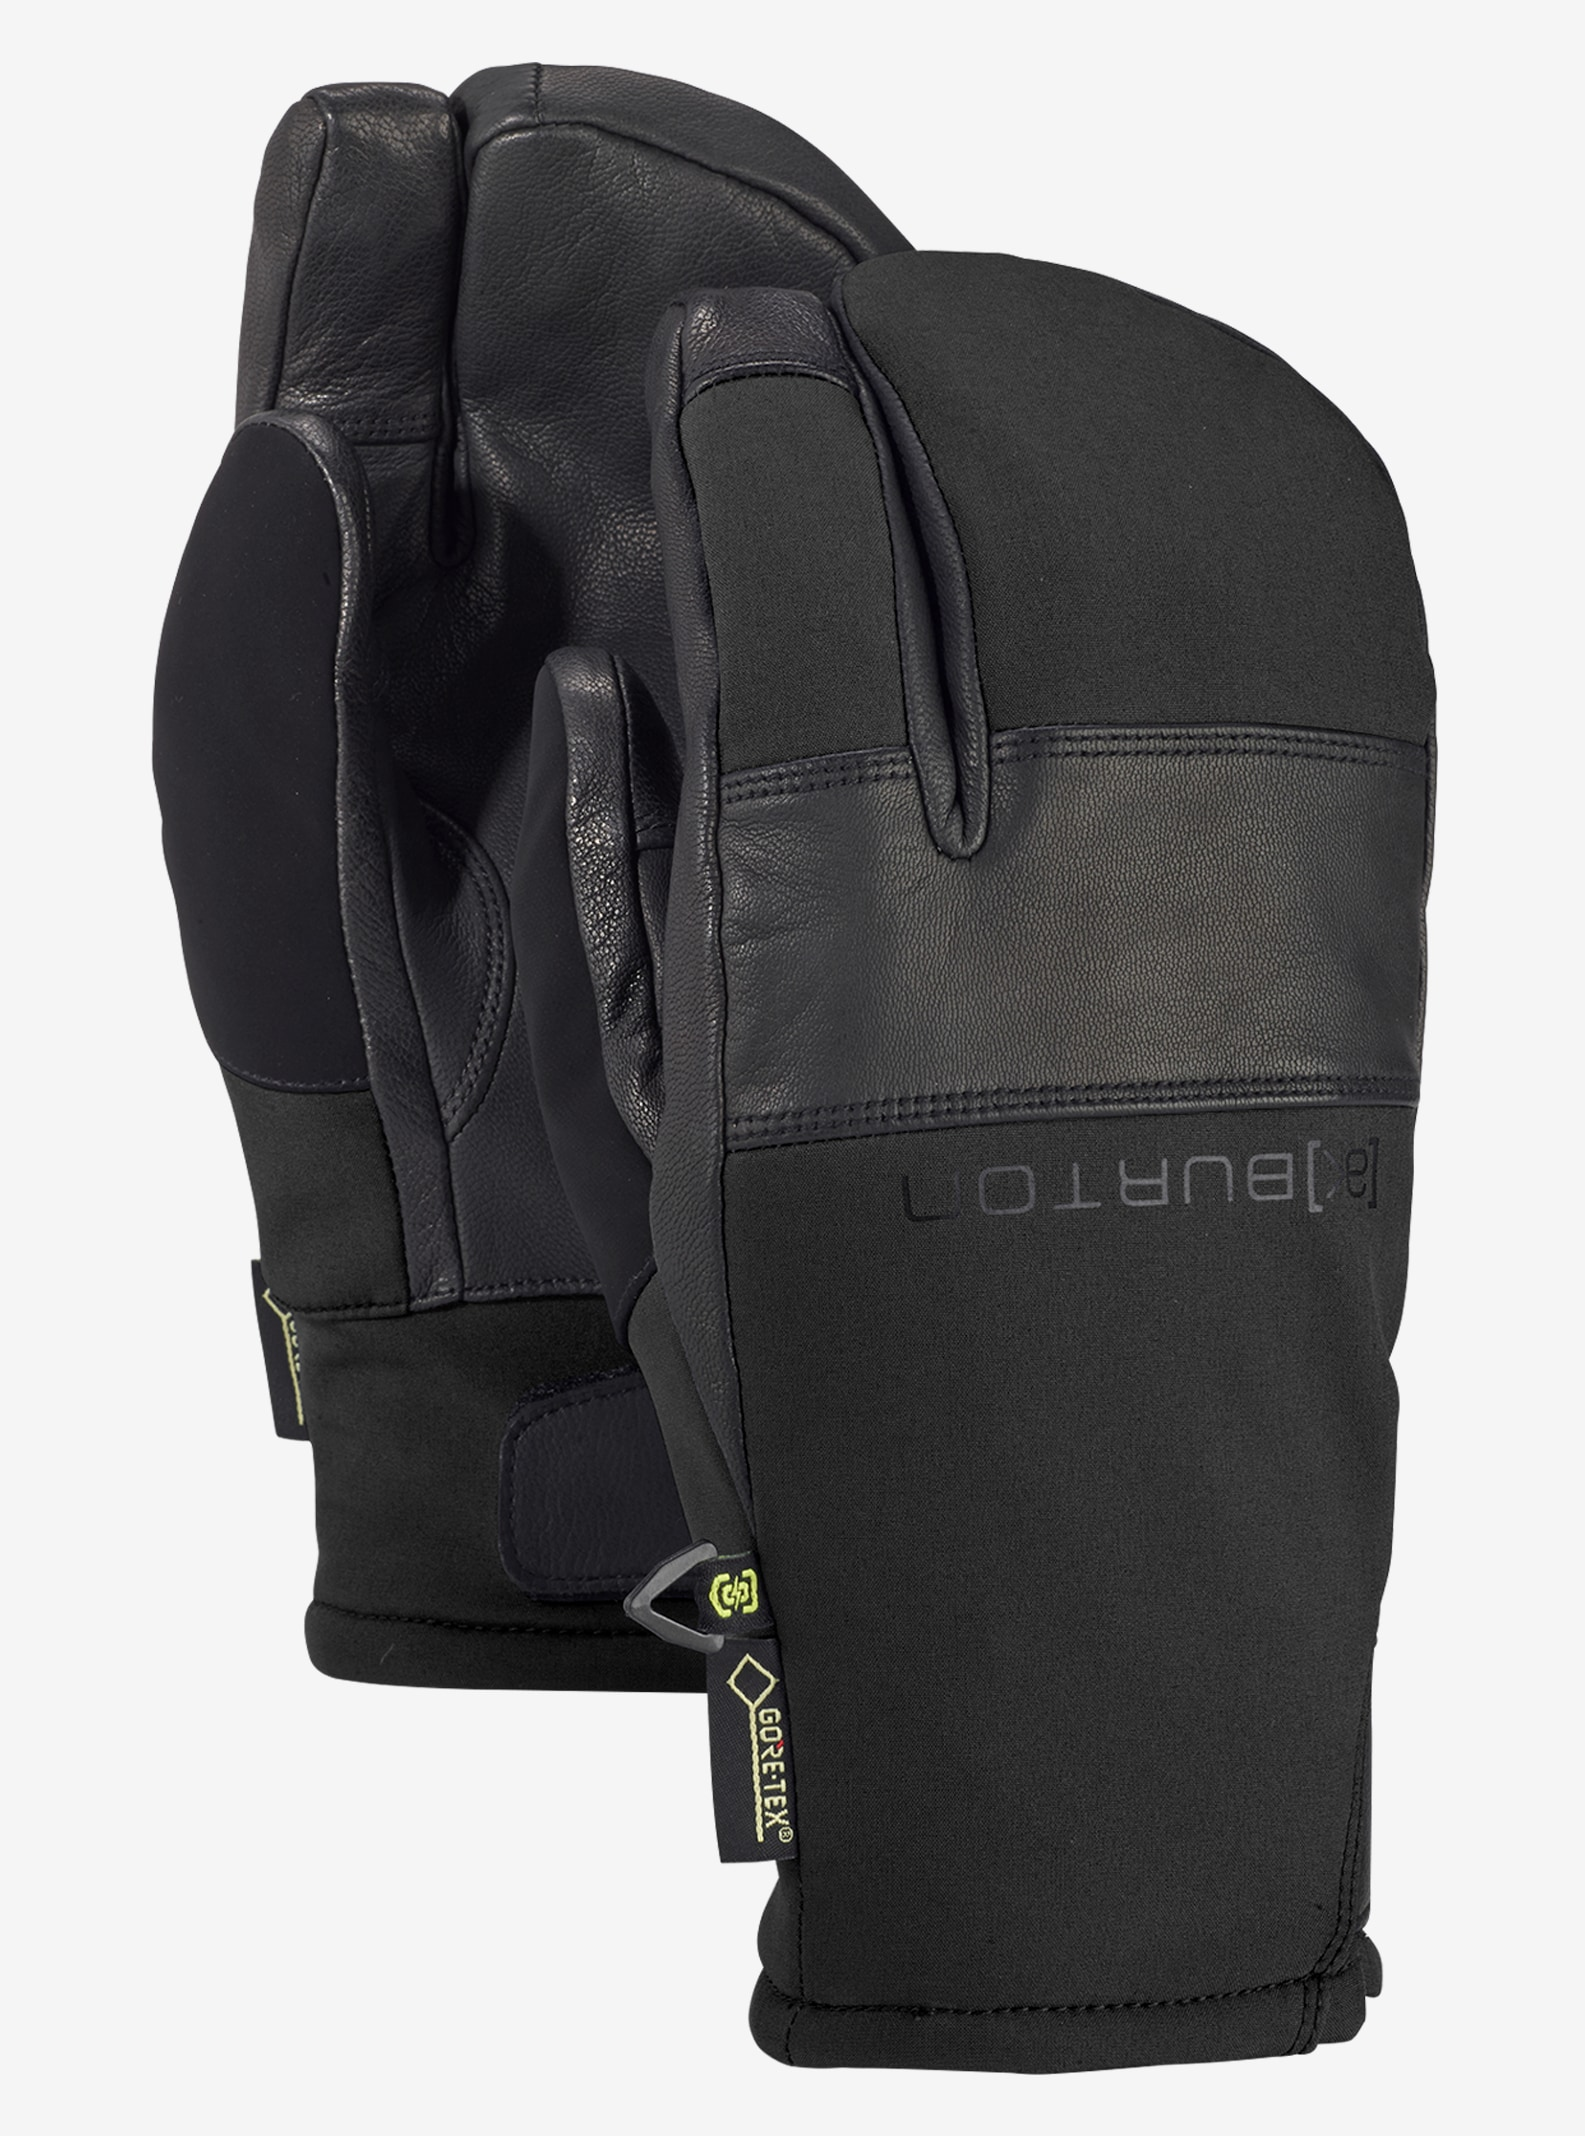 Men's Burton [ak] GORE‑TEX® Clutch Mitt shown in True Black